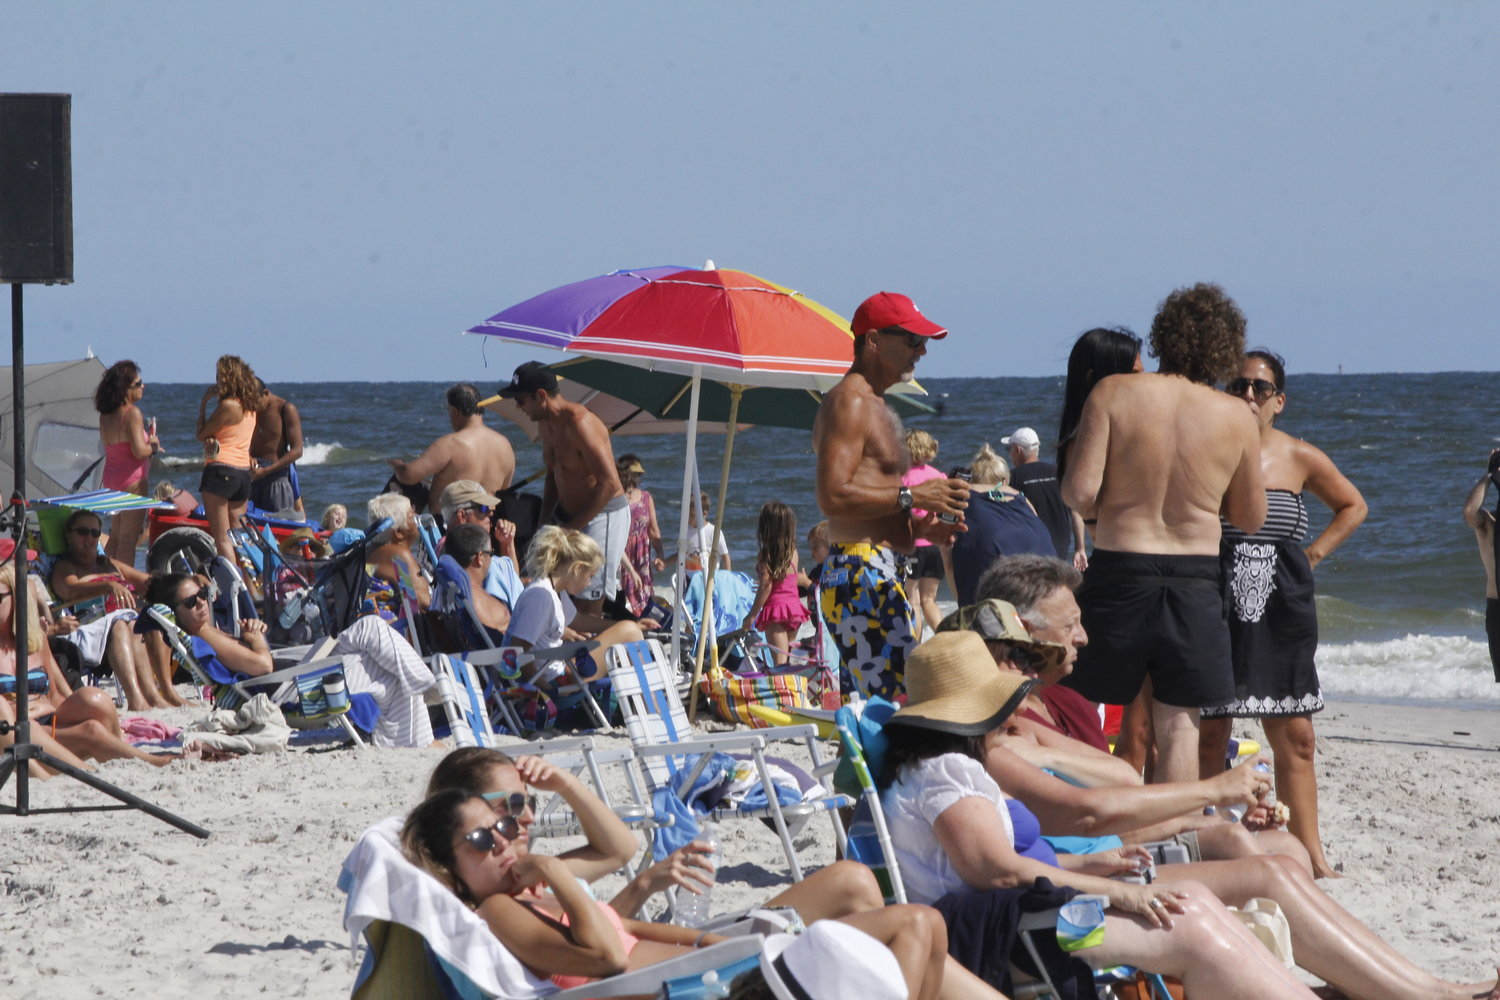 Long Island beaches, including this one in Long Beach, will be open on Memorial Day weekend, Gov. Andrew Cuomo said. Beach clubs and Atlantic Beach village beaches will open May 30.